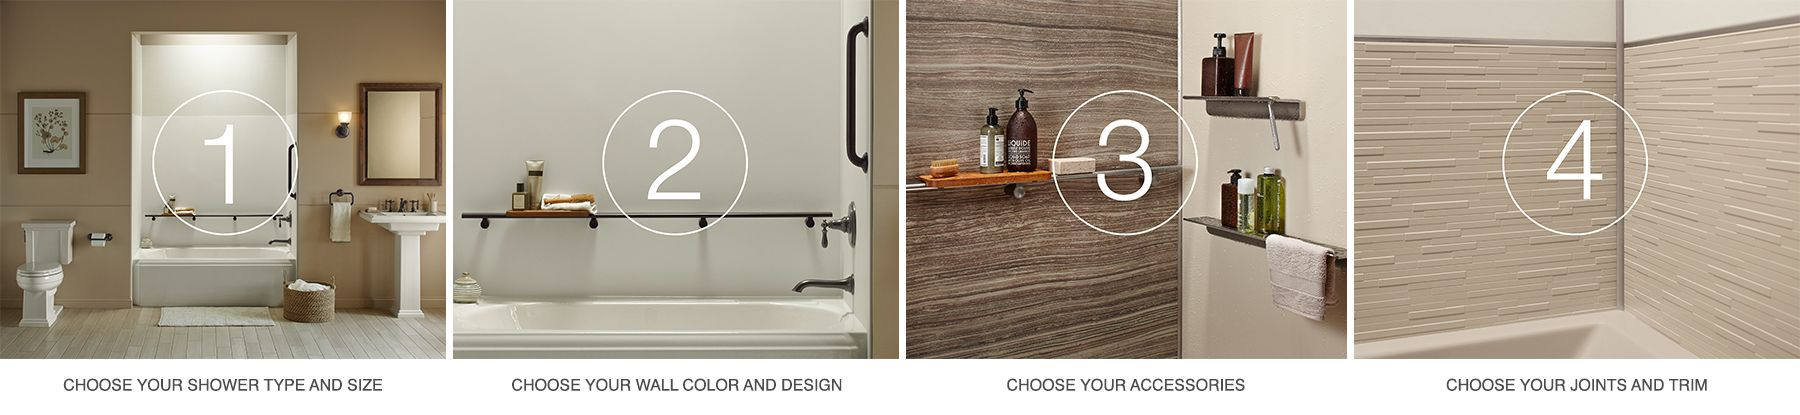 Bathroom Remodel Ideas Kohler choreograph shower wall and accessory collection | bathroom | kohler